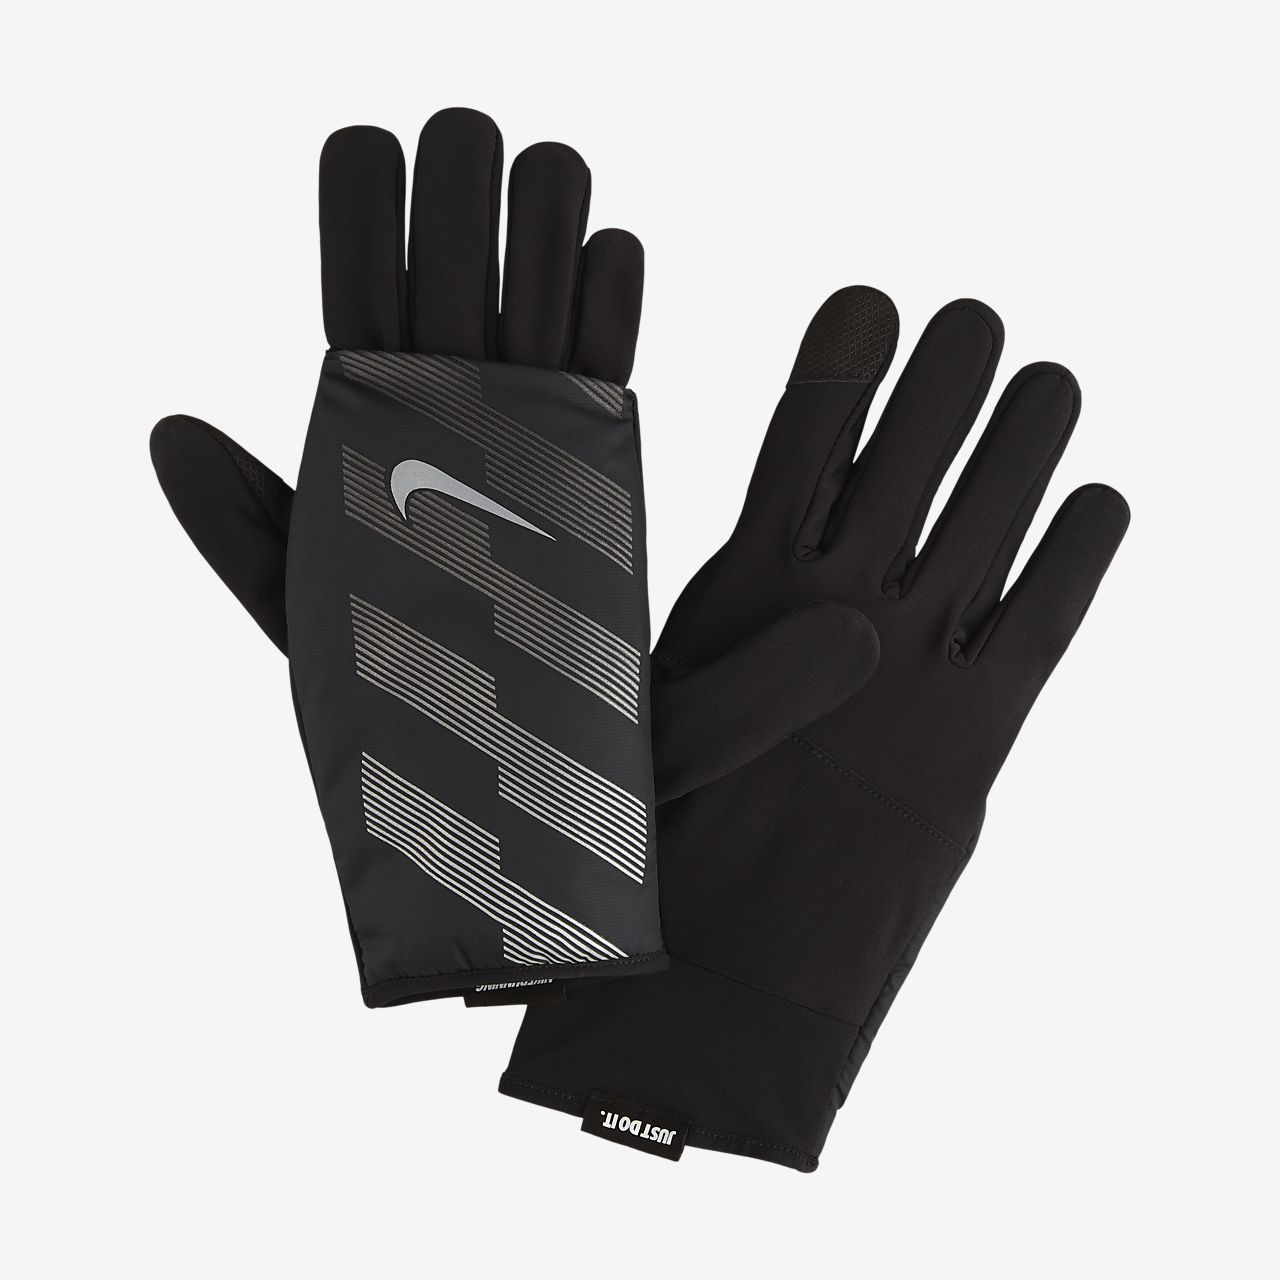 Gants de running Nike Flash Quilted pour Homme